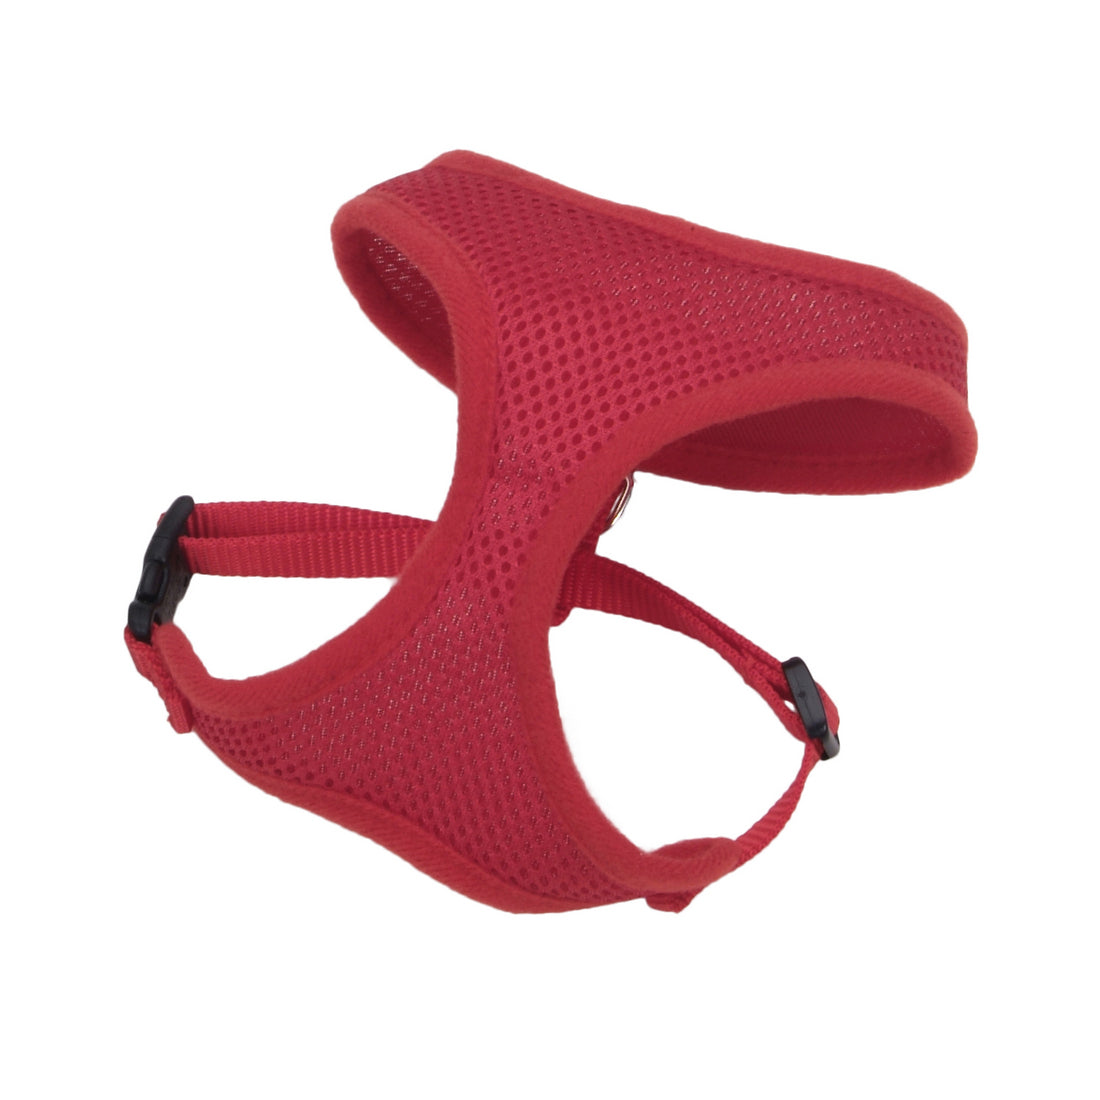 Coastal Comfort Soft Adjustable Harness Medium Red